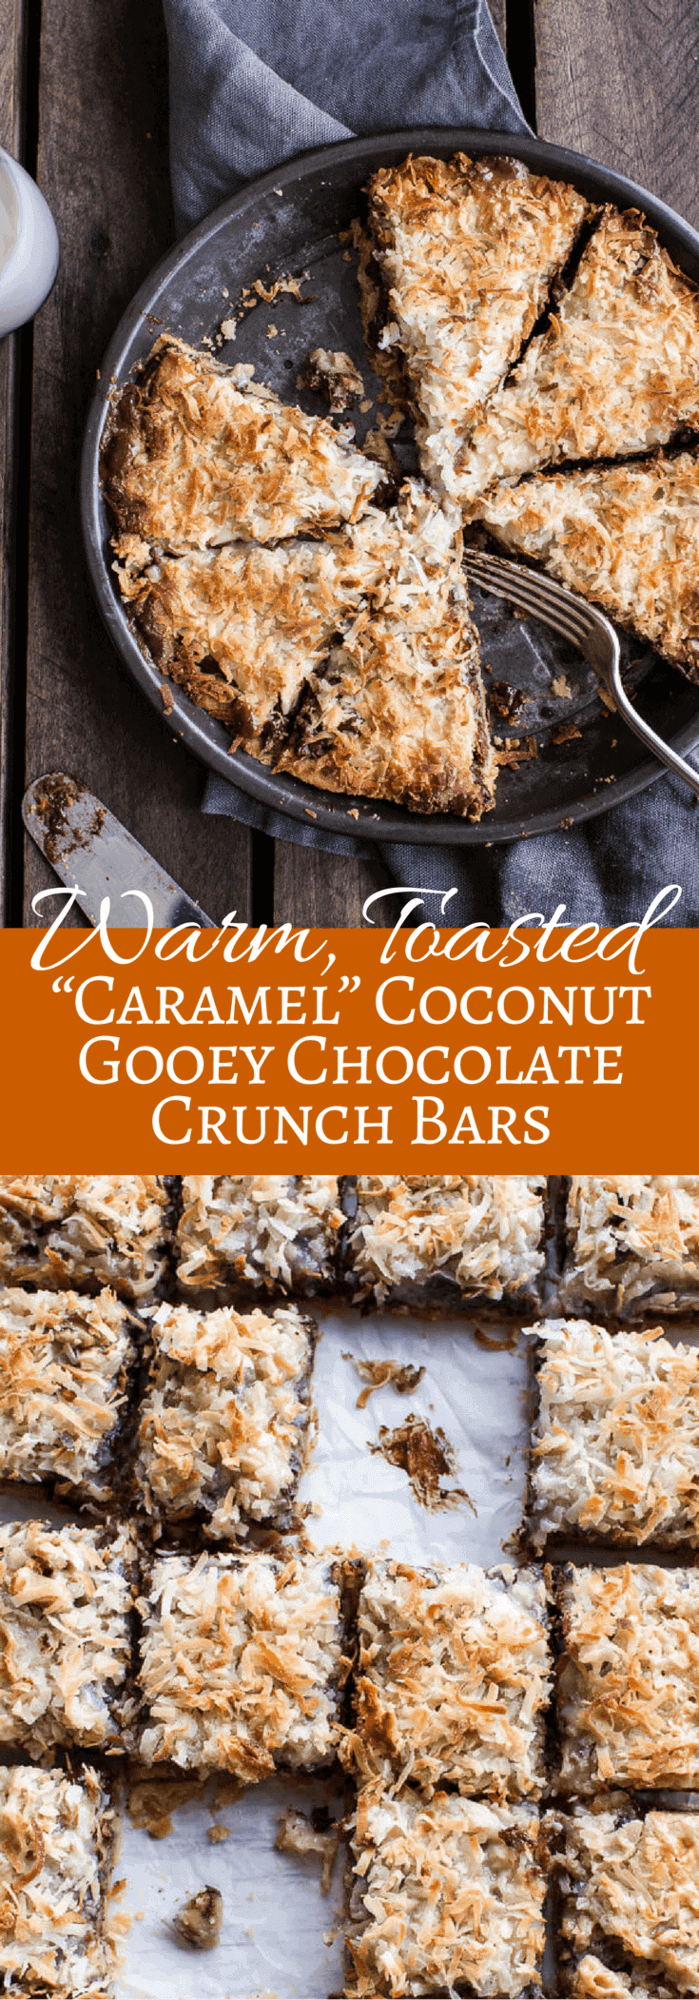 Warm, Toasted Caramel Coconut Gooey Chocolate Crunch Bars | halfbakedharvest.com @hbharvest